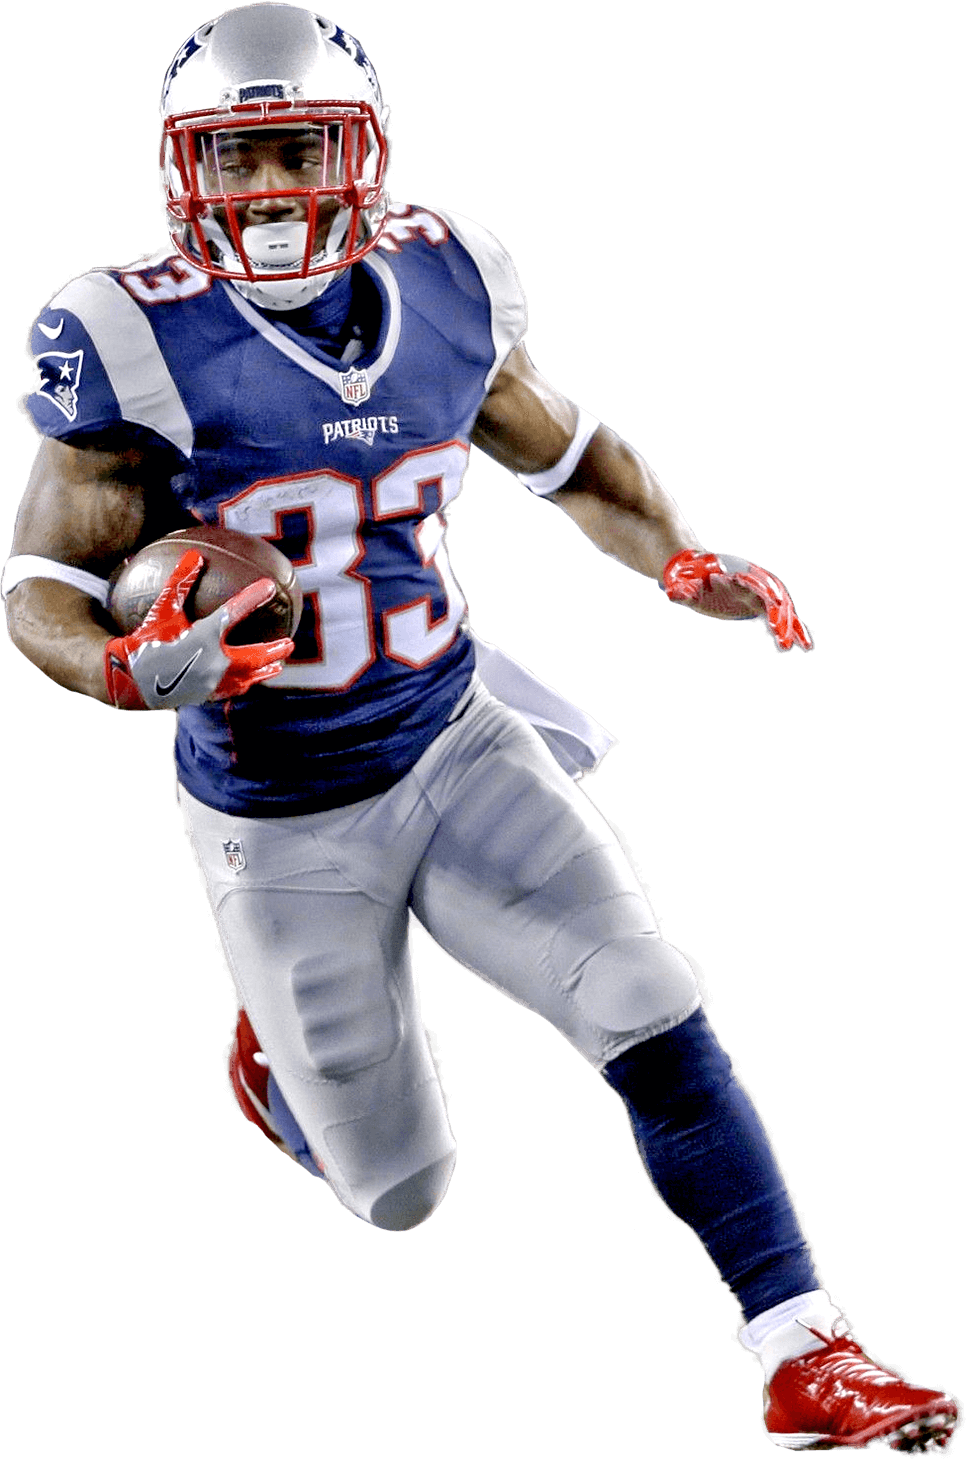 Patriots players png. Those polarizing do you